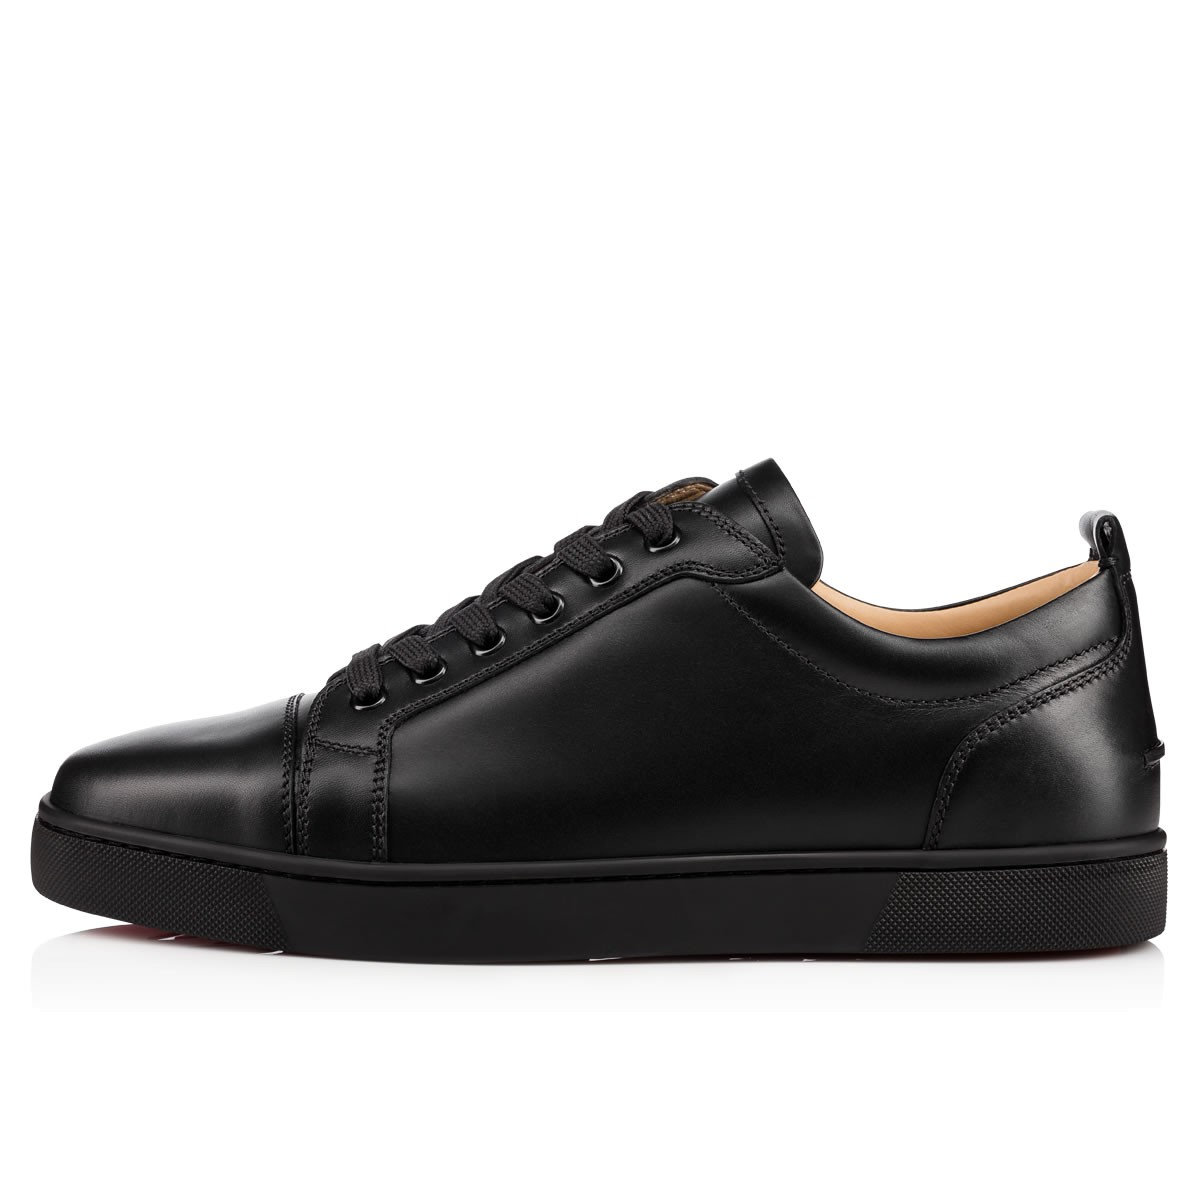 Shoes - Louis Junior Men's Flat - Christian Louboutin